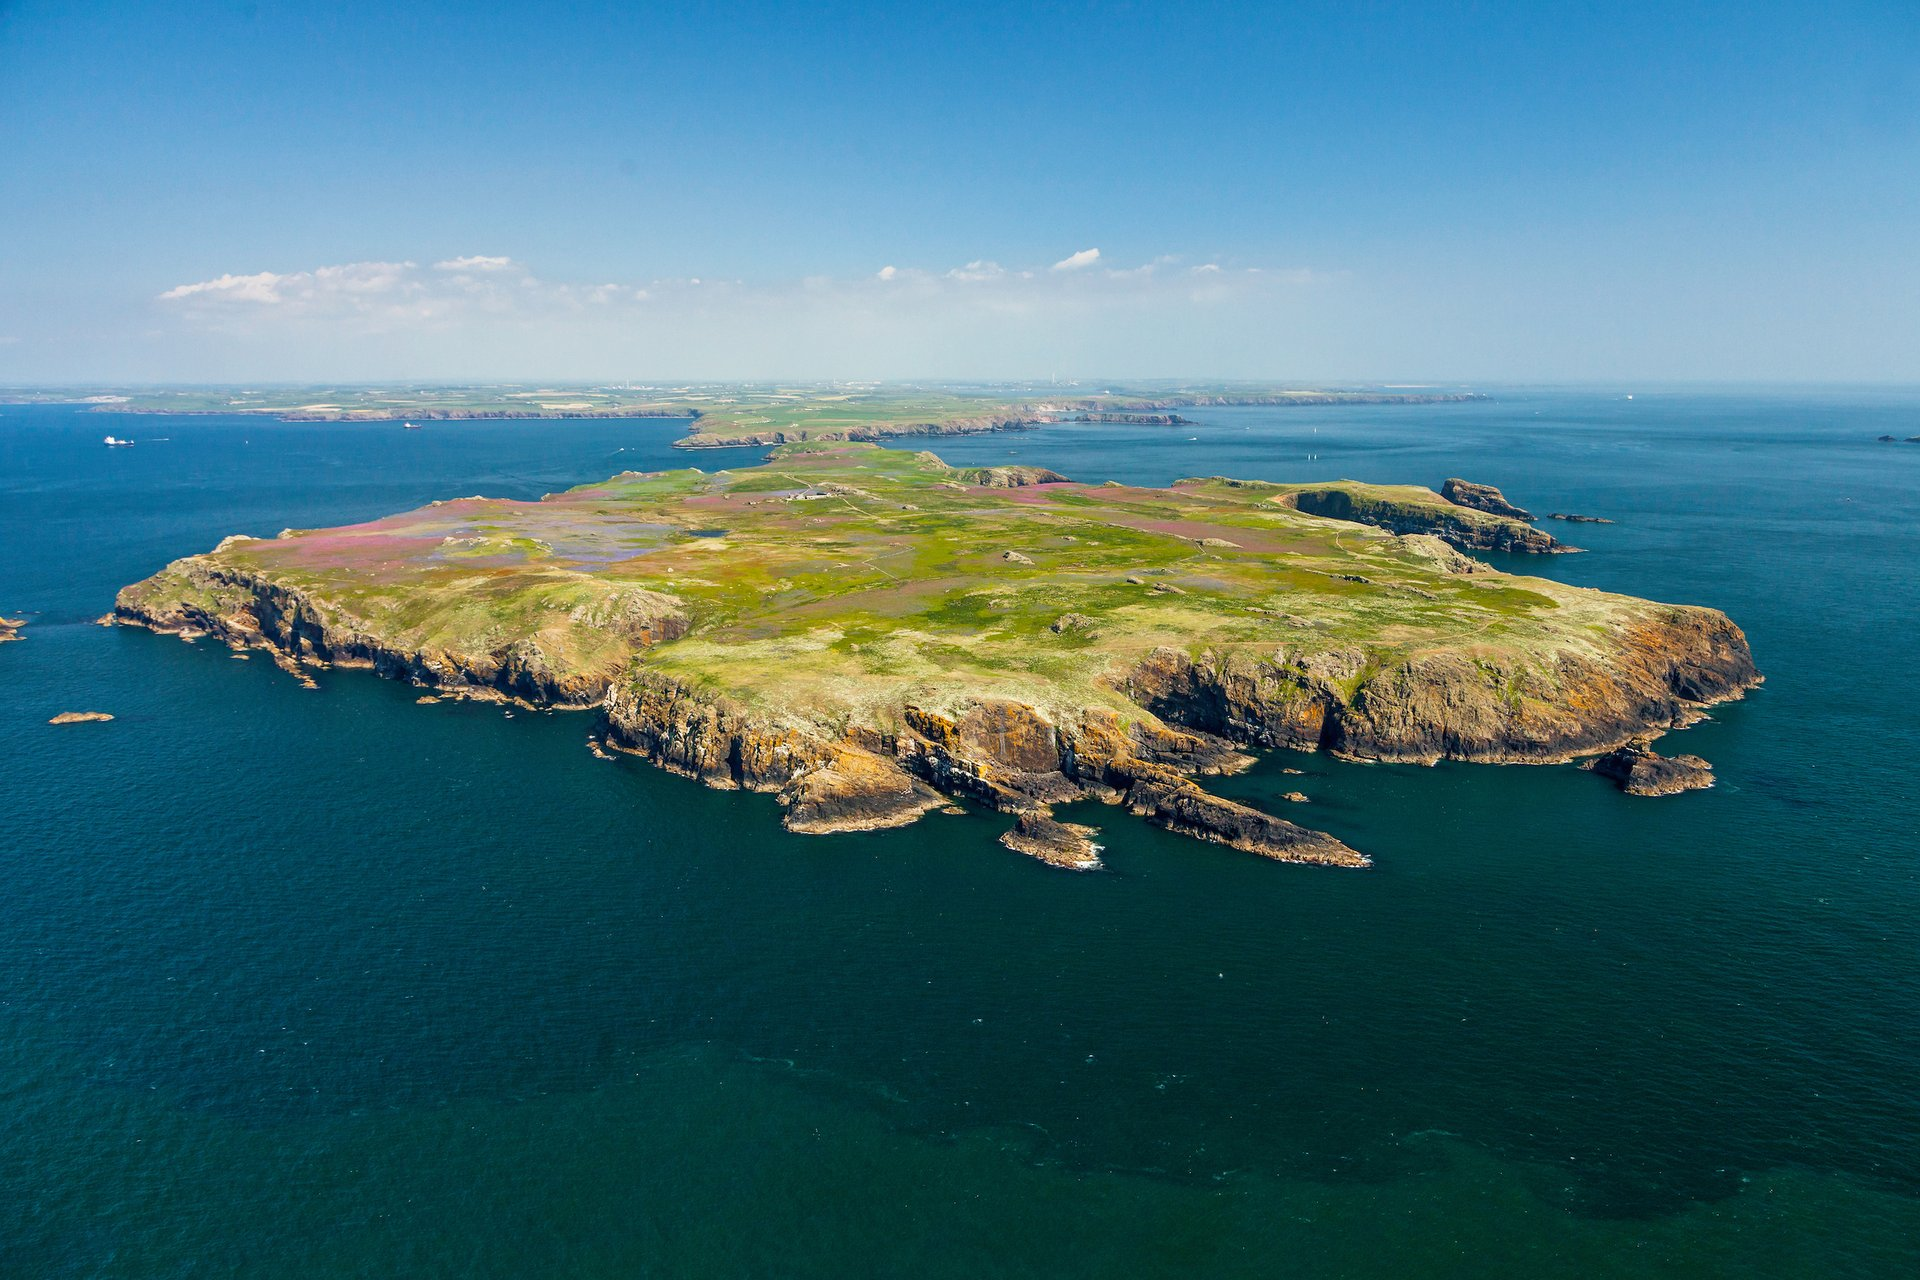 Aerial view of Skomer Island